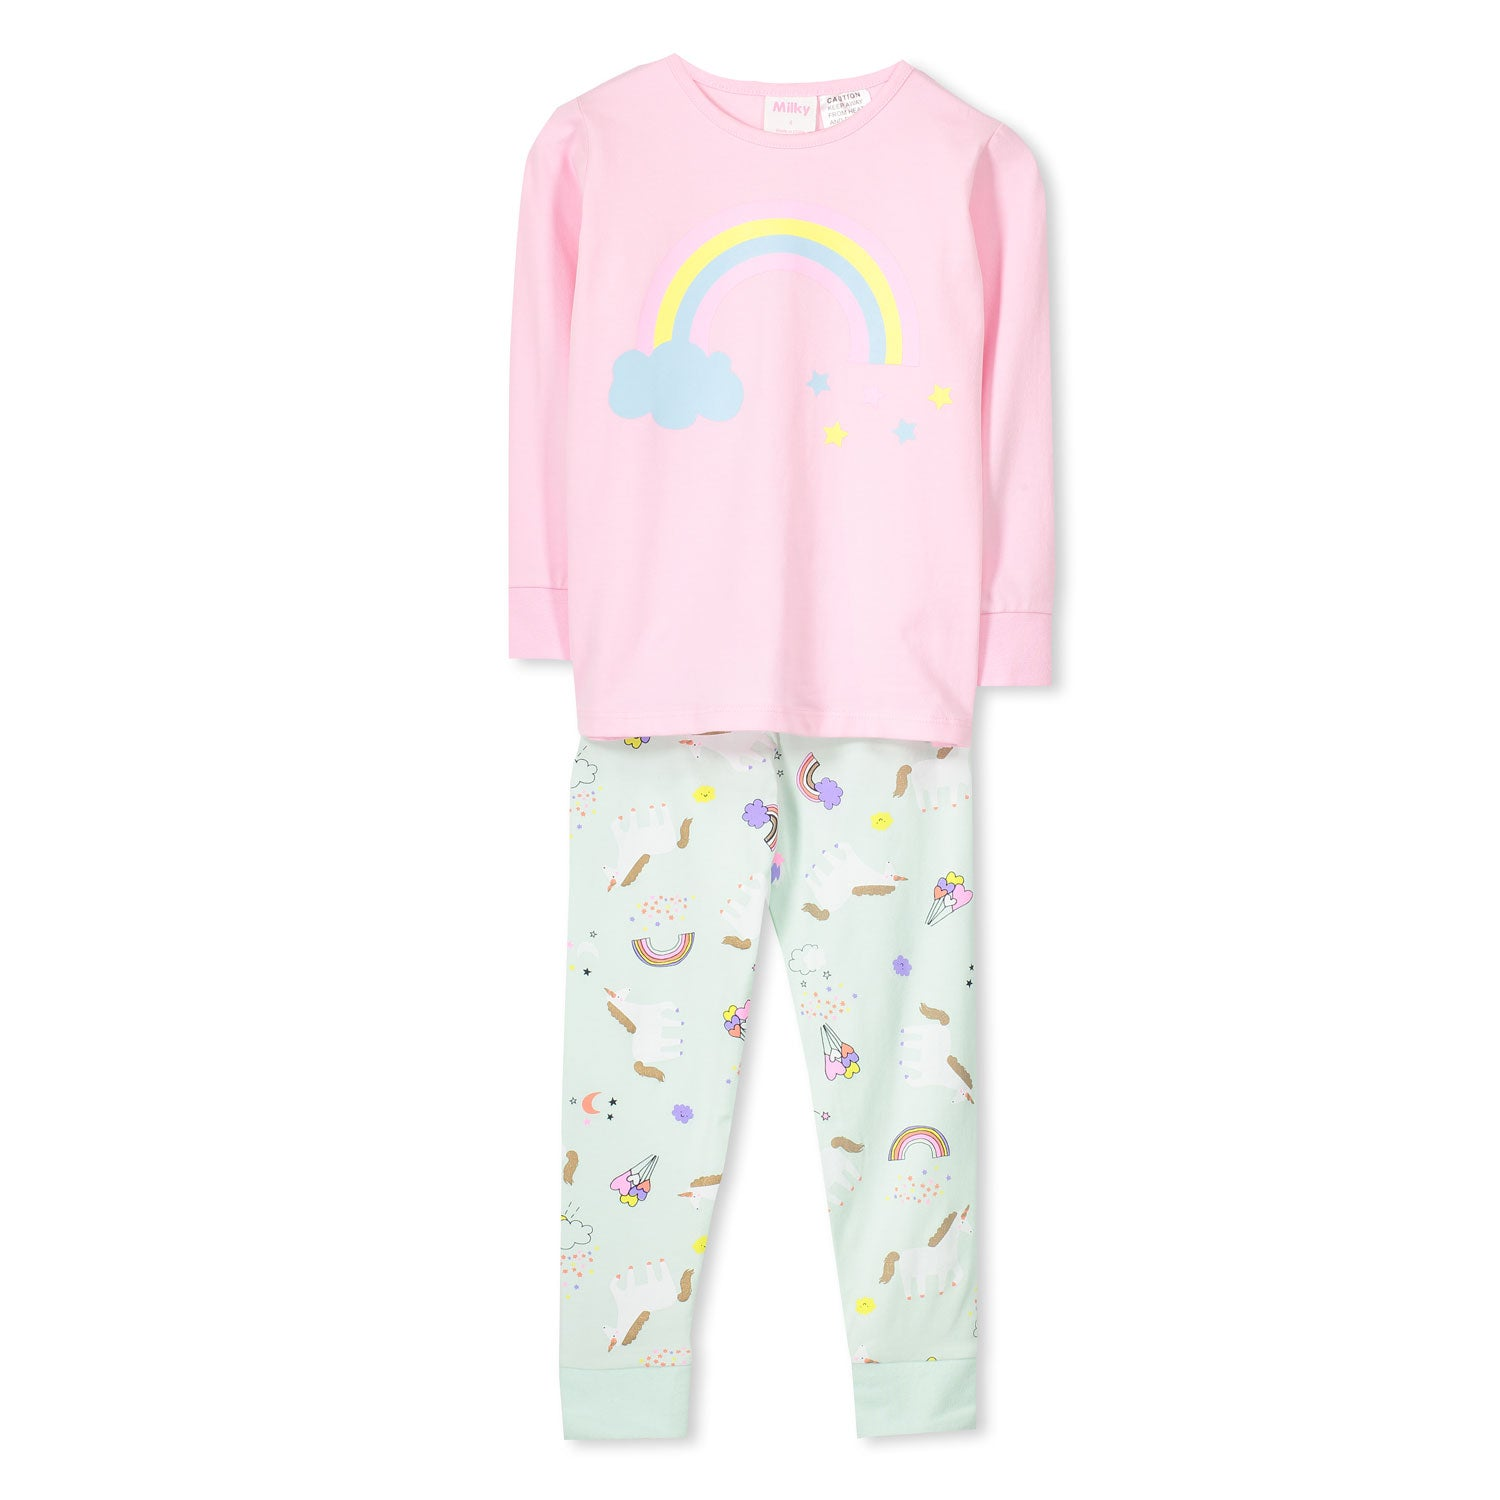 Unicorn Toddler Pj's